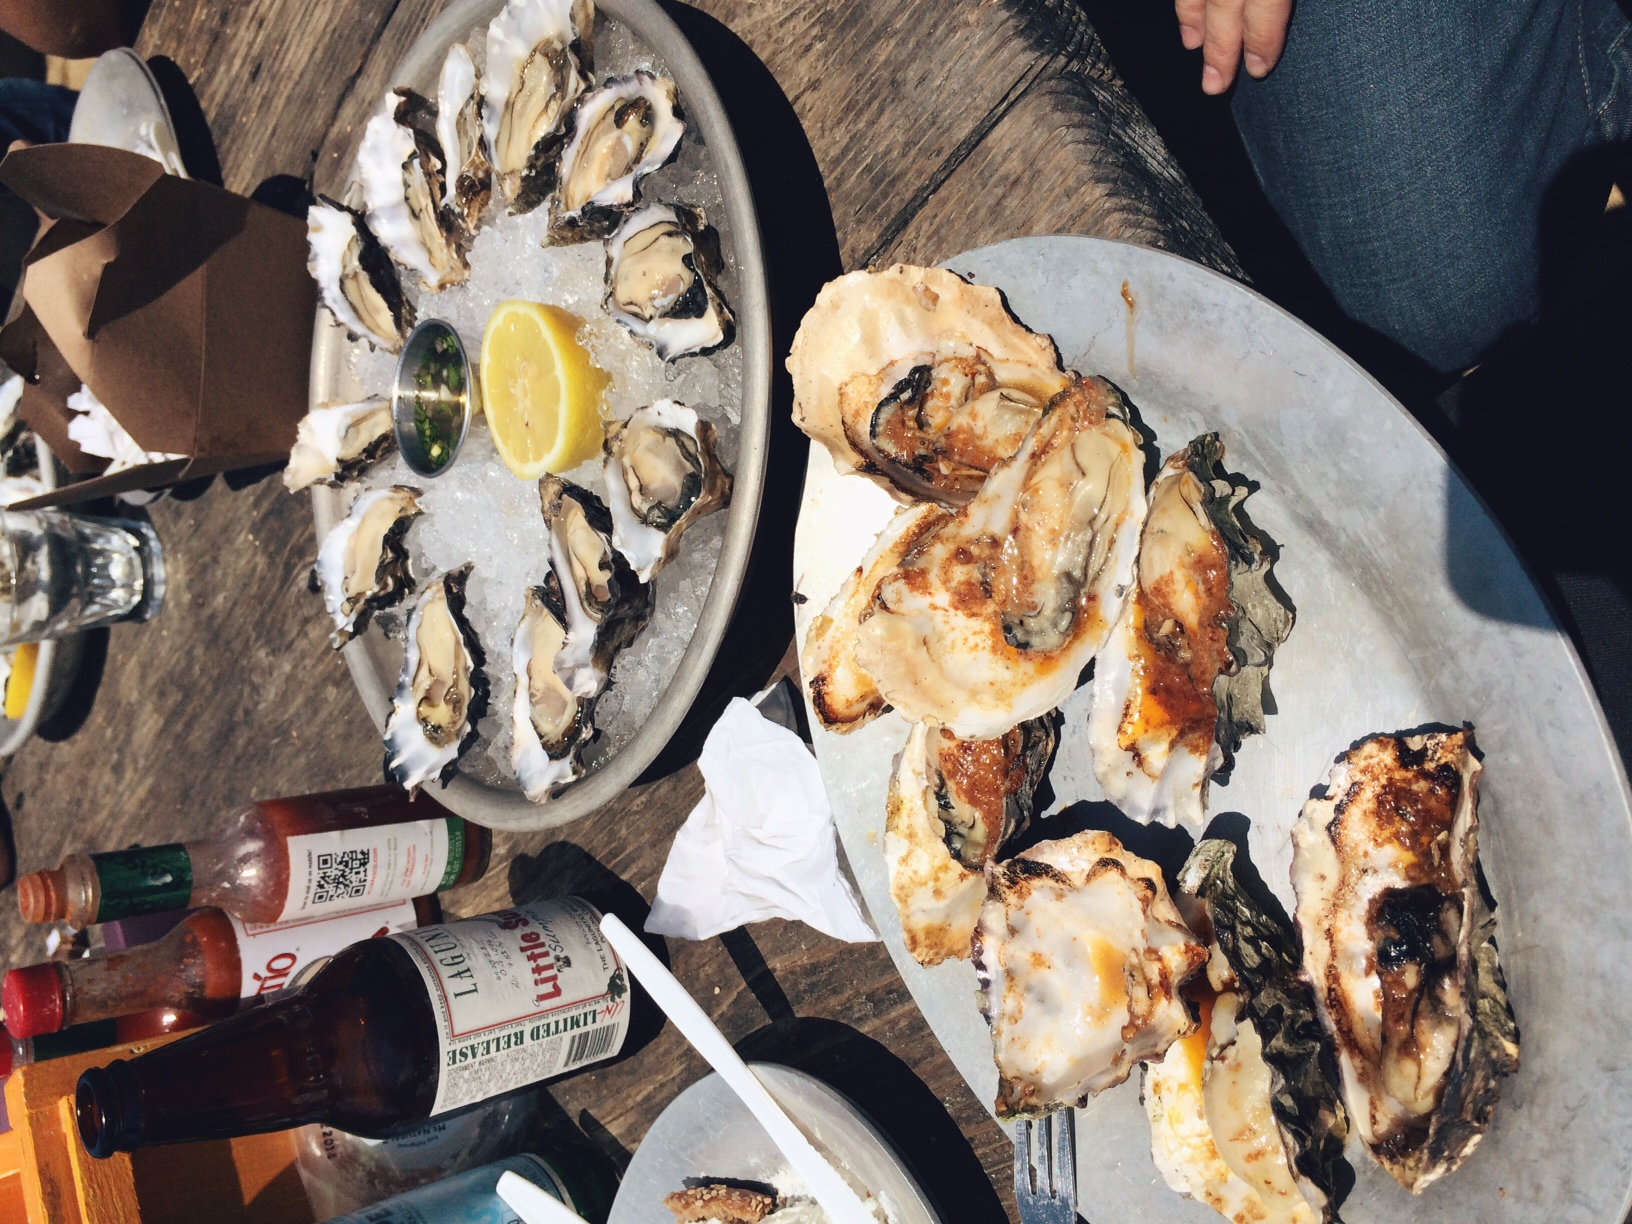 I wasn't always a fan of West Coast oysters but I was obviously misguided on what to order. Definitely get an order of the BBQ oysters and pair it with a glass of their Riesling. The sweet and salty go well together. We also ordered some of their local cheese and bread plate. If you can't make it to this location they have a few locations in San Francisco.